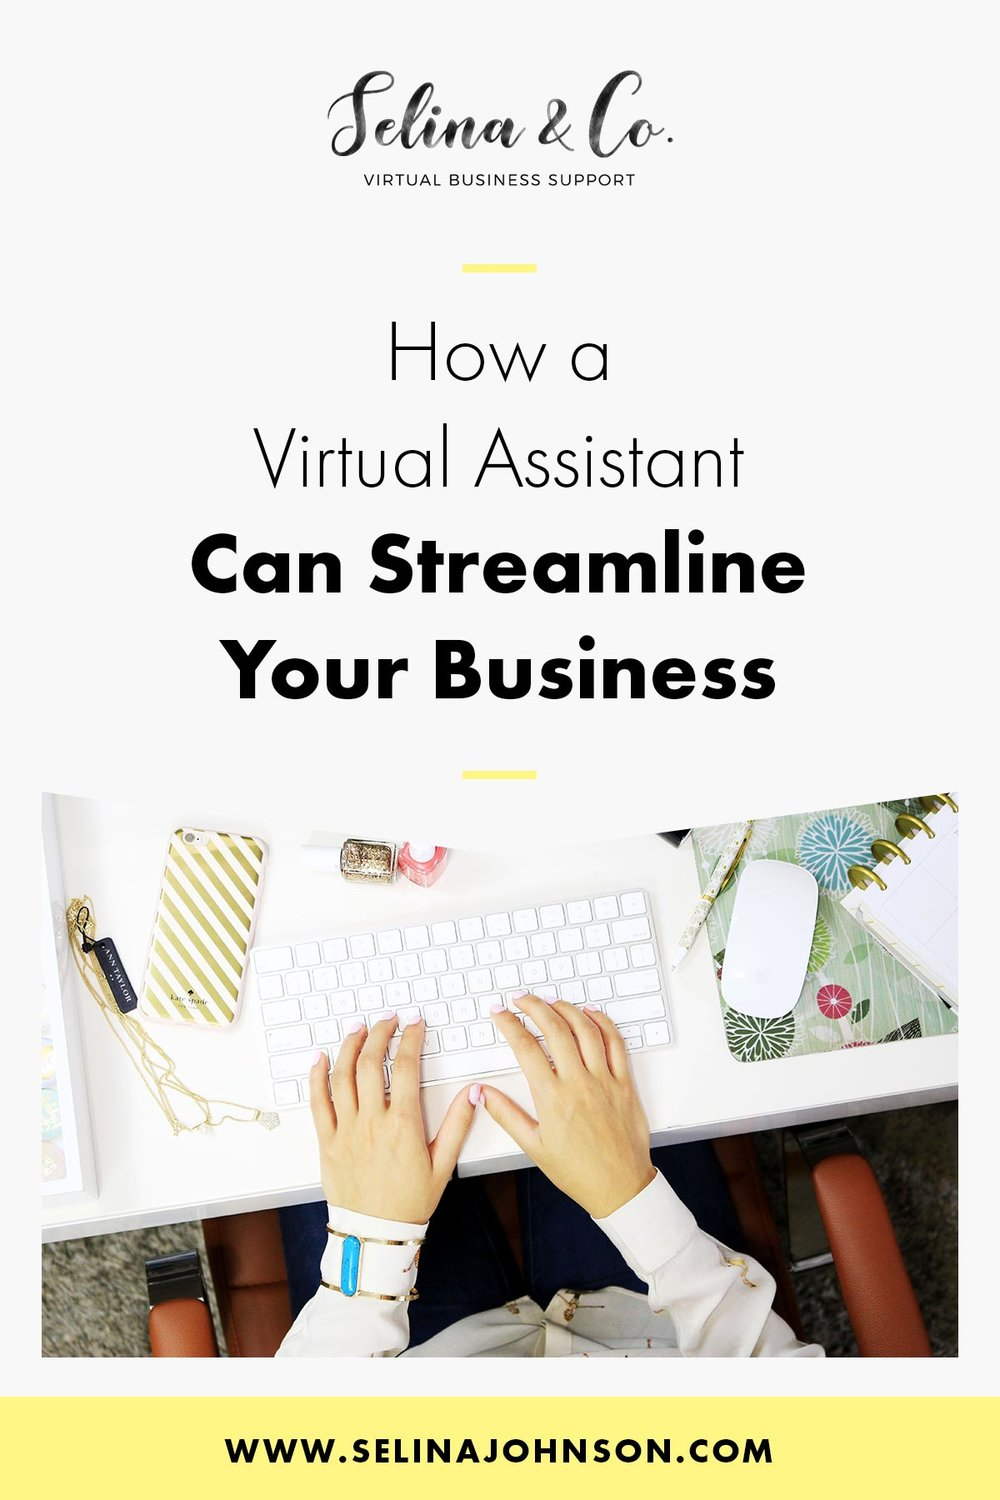 virtual-assistant-streamline-business.jpg